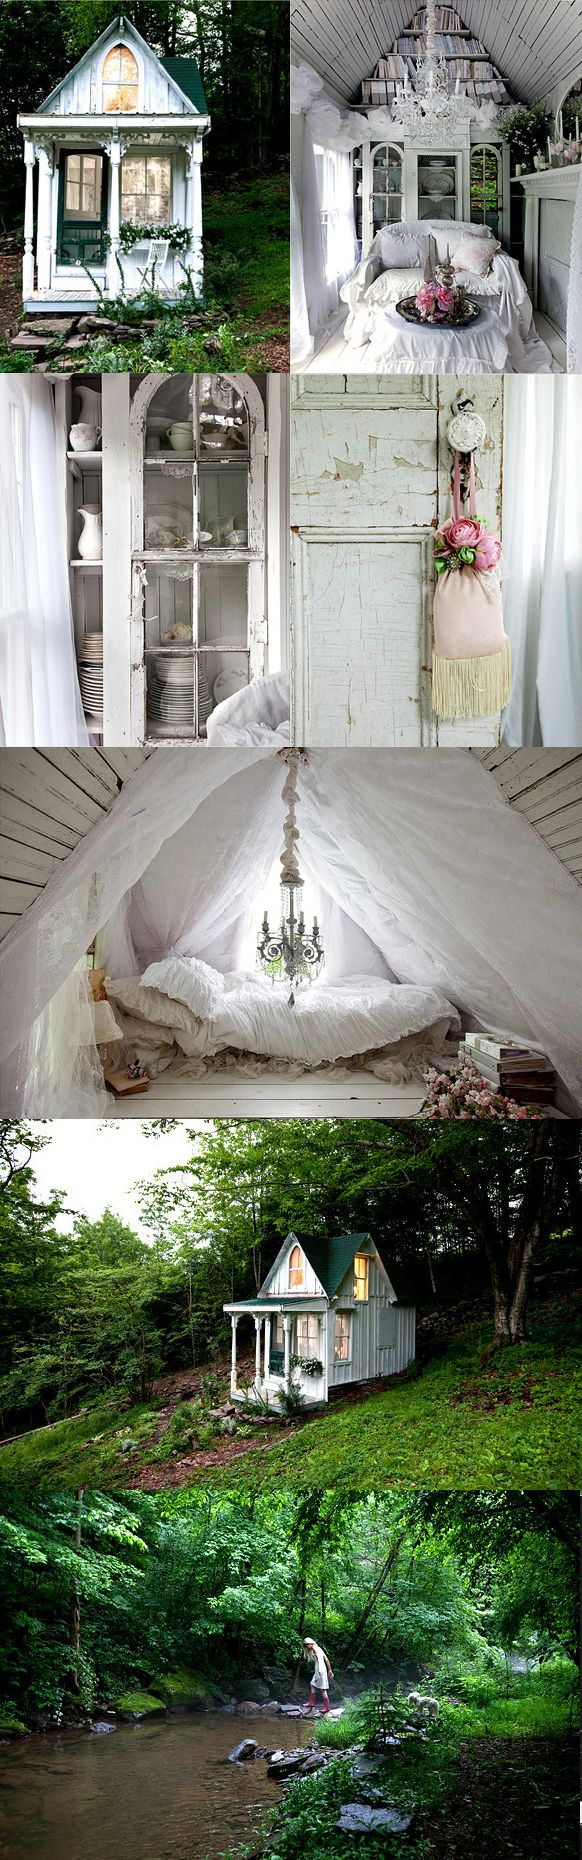 May not be practical, but love it anyway!: Dreams Houses, Little Houses, Shabby Chic, Tiny Houses, Victorian Cottages, Tiny Cottages, Plays Houses, Little Cottages, Fairies Tales